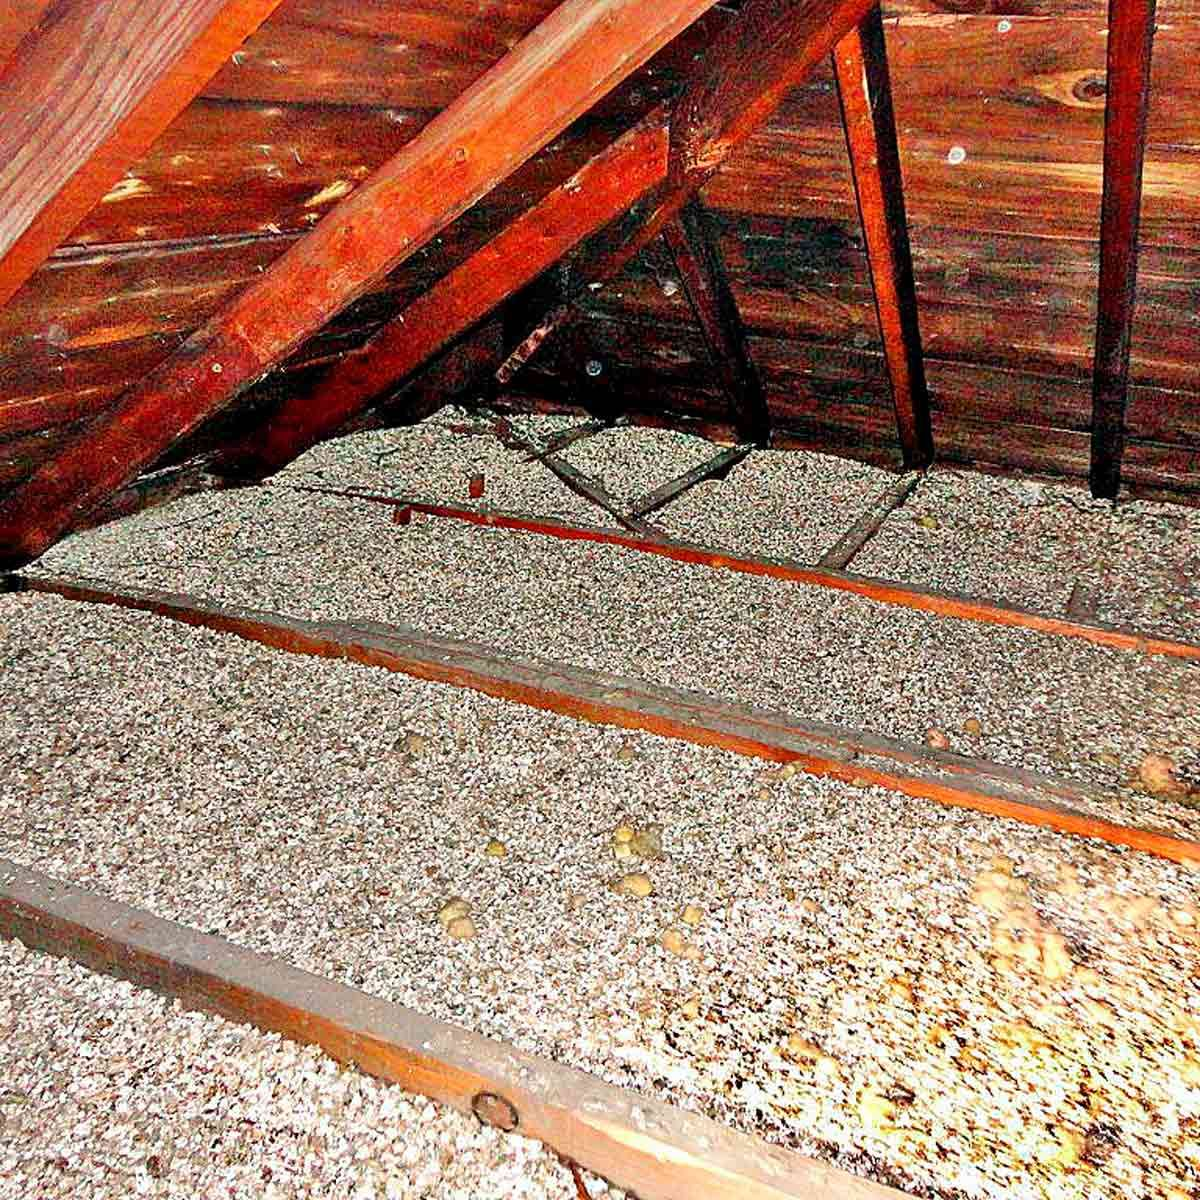 5 Things You Need To Know About Vermiculite Vermiculite Insulation Attic Insulation Attic Insulation Removal